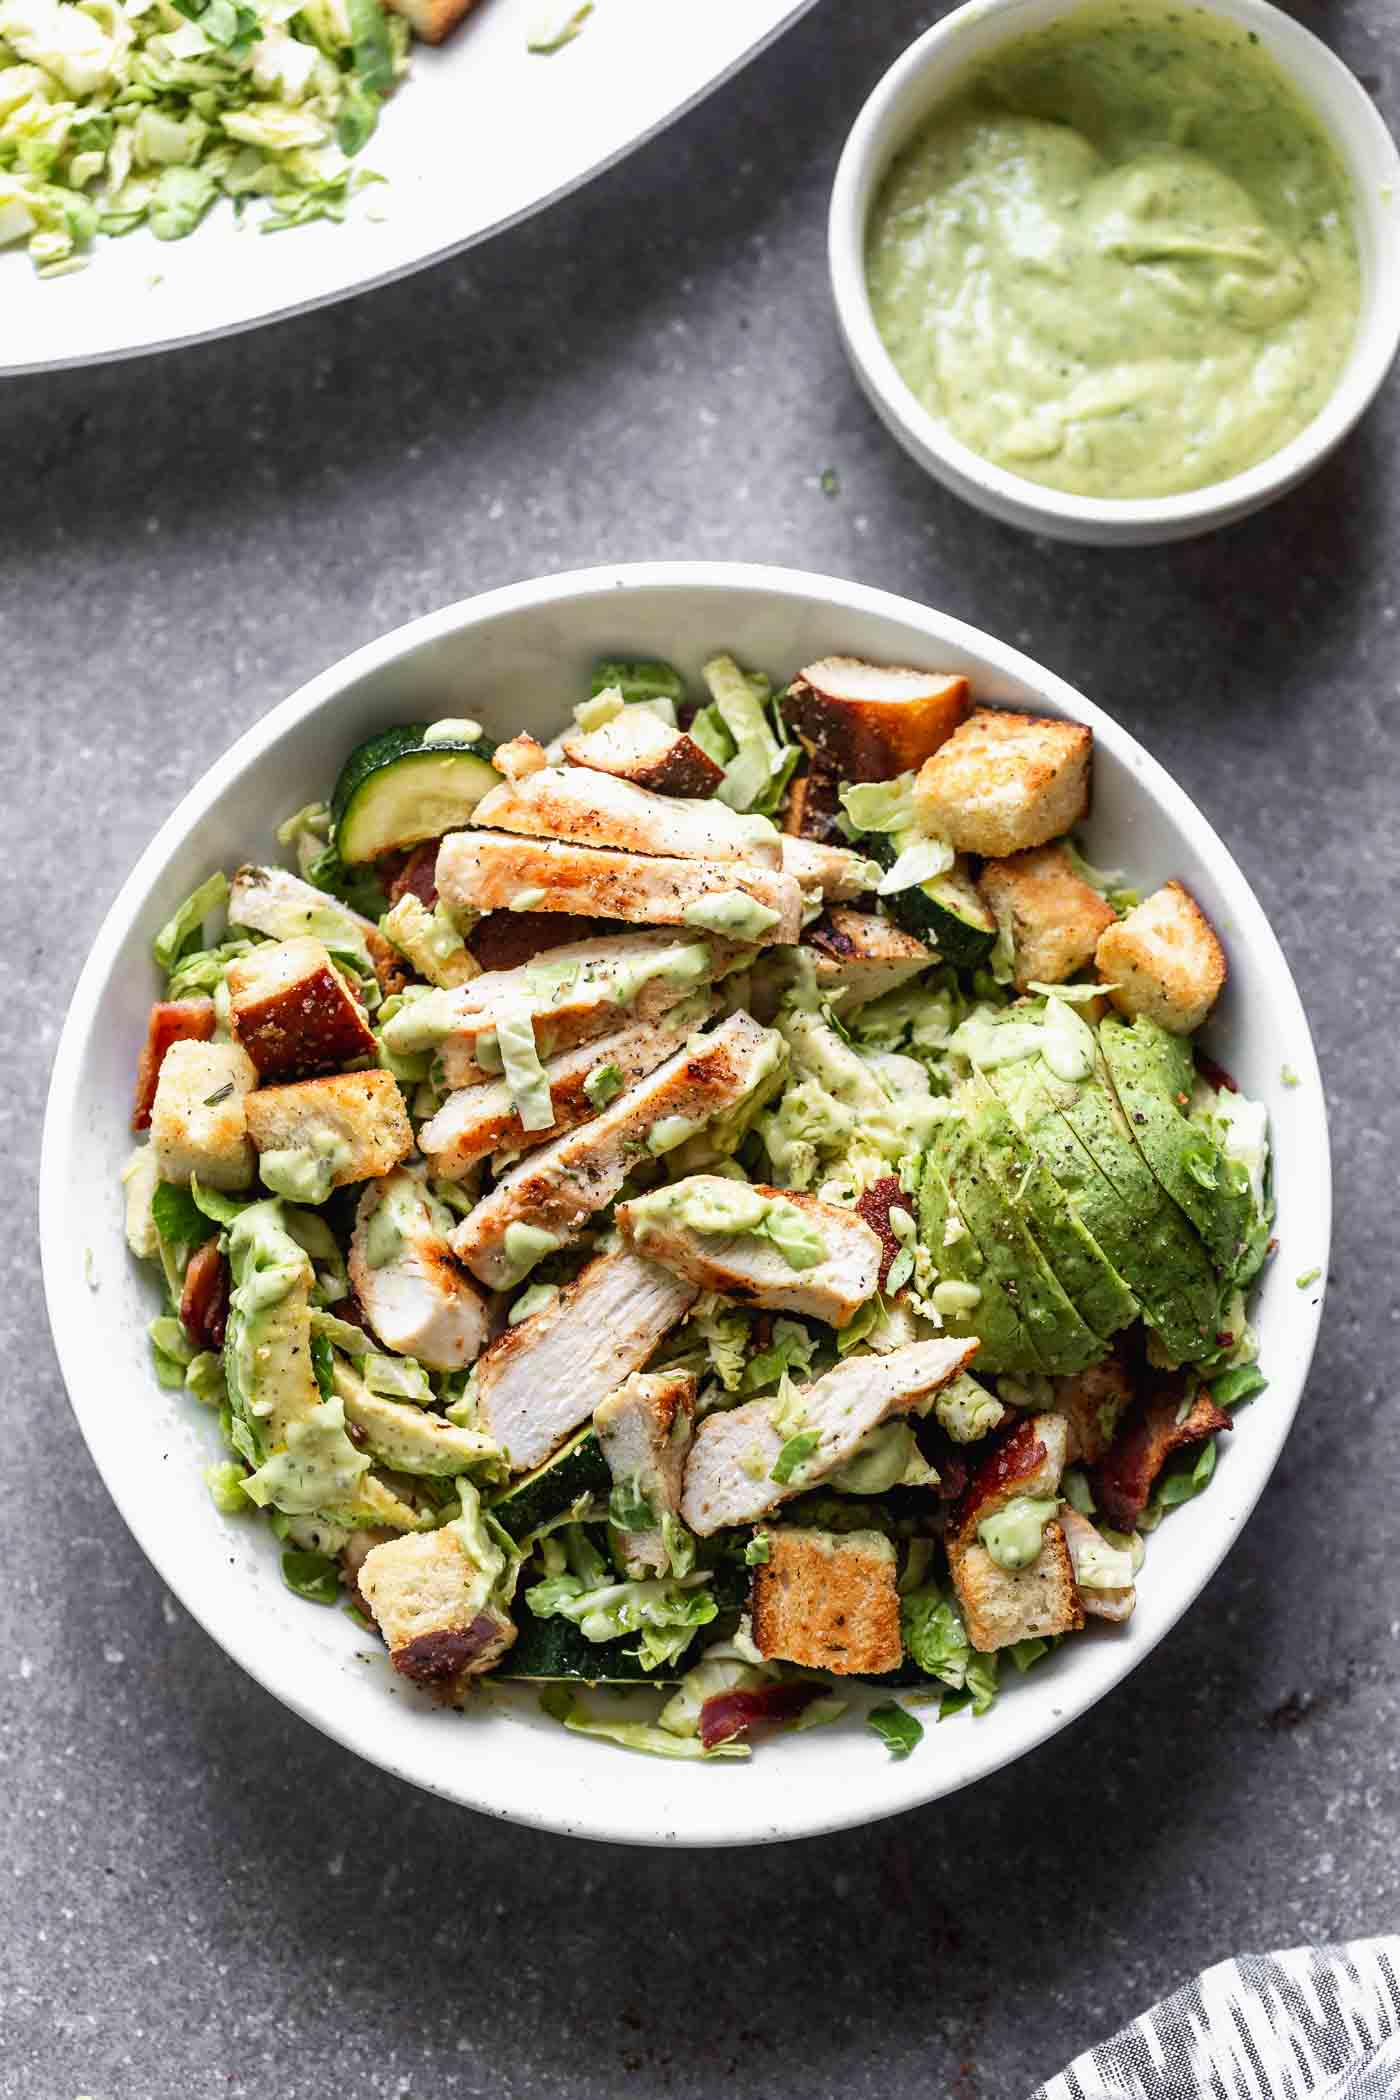 Our Brussels Sprout Green Goddess Salad with Bacon and GrilledChicken is hearty, healthy, and one of the best salads you'll ever make. We toss shreddedBrussels sprouts with grilled zucchini, grilled chicken, crispy bacon, and crunchcroutons and then toss everything in an herb-packed dressing you'll want to smother on EVERYTHING.